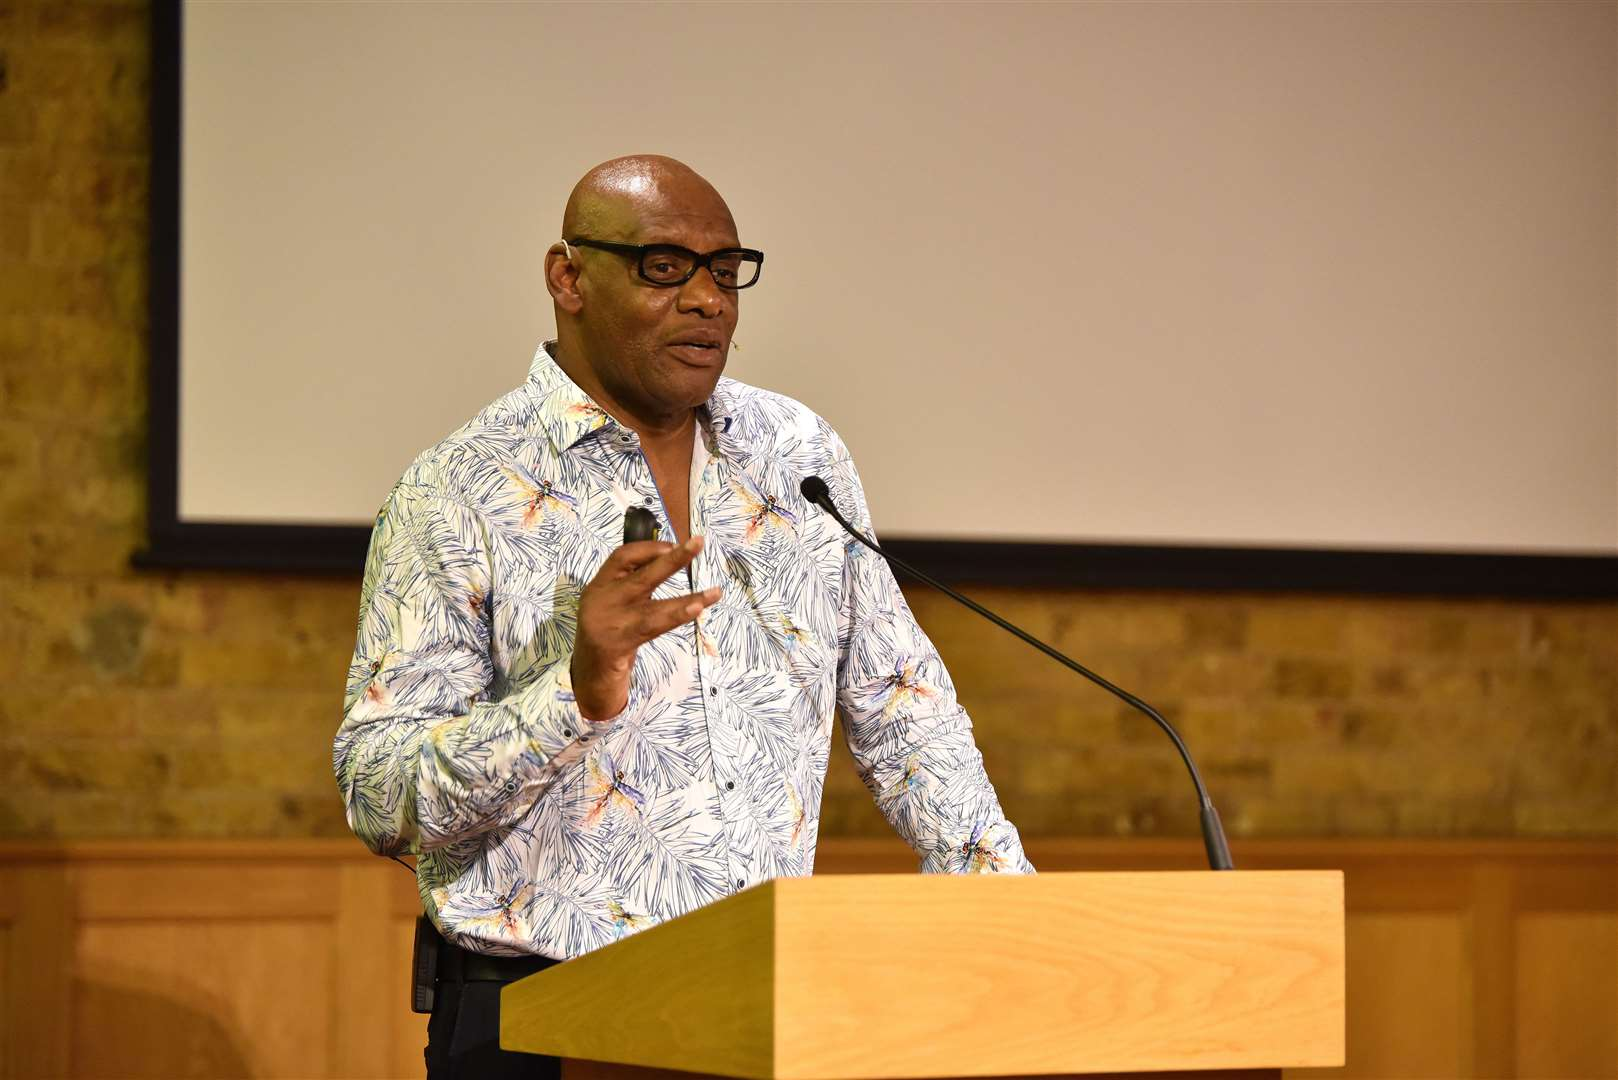 Shaun Wallace at the Bishop's Stortford College Festival of Literature. Photo: Steve Beeston (28832972)